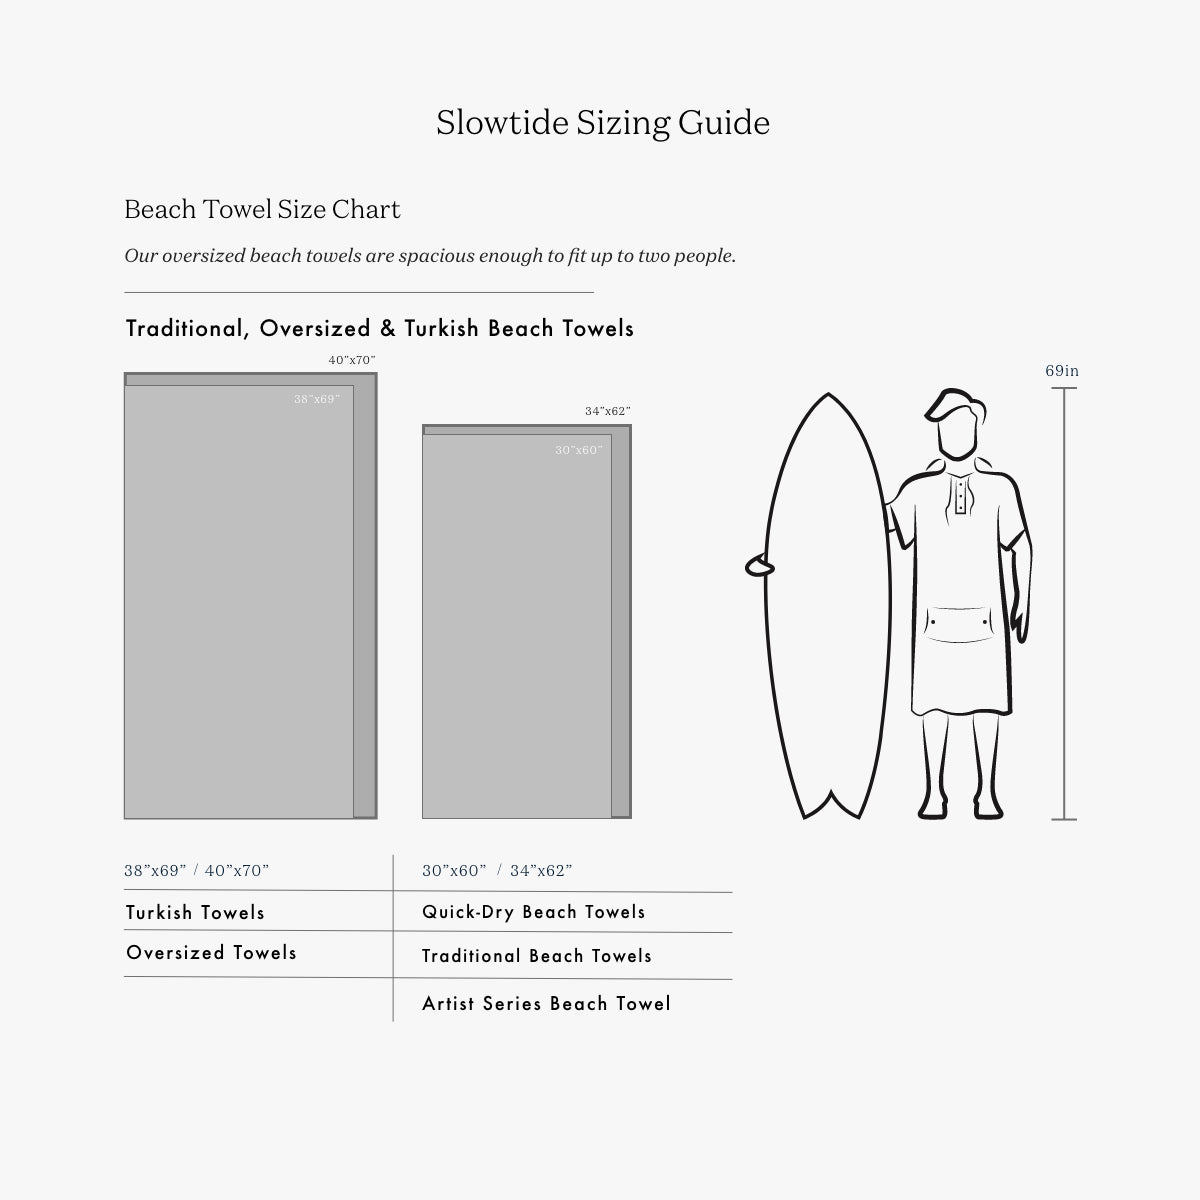 Pipe Quick-Dry Towel - Slowtide